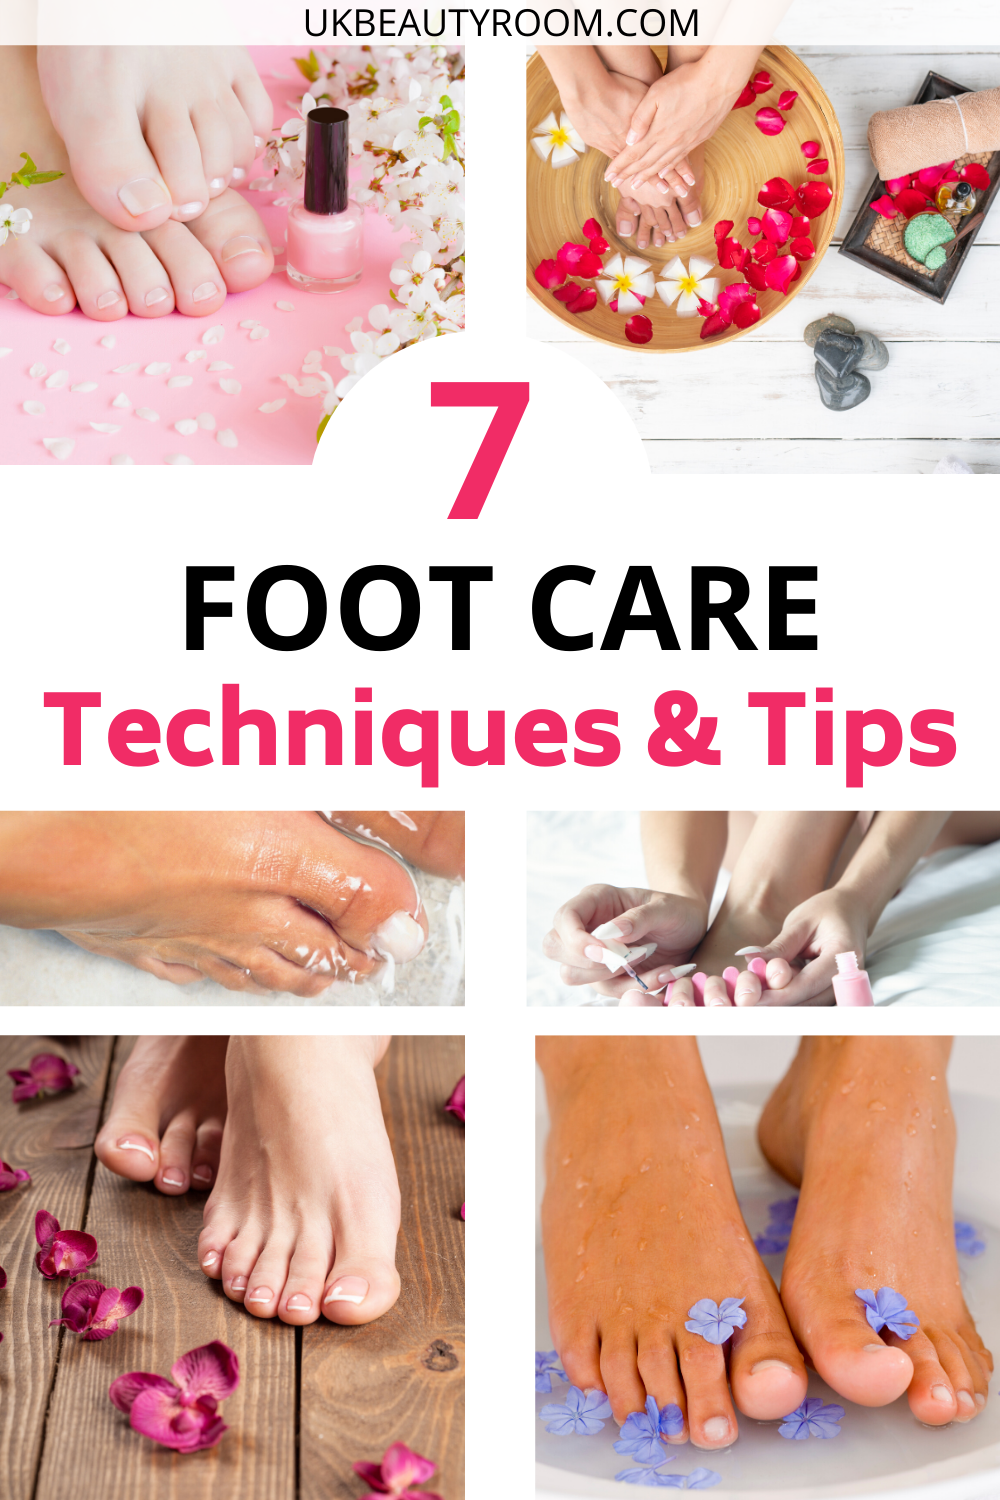 8 FOOT CARE TECHNIQUES AND TIPS FOR YOUR DIY HOME PEDICURE , #Care